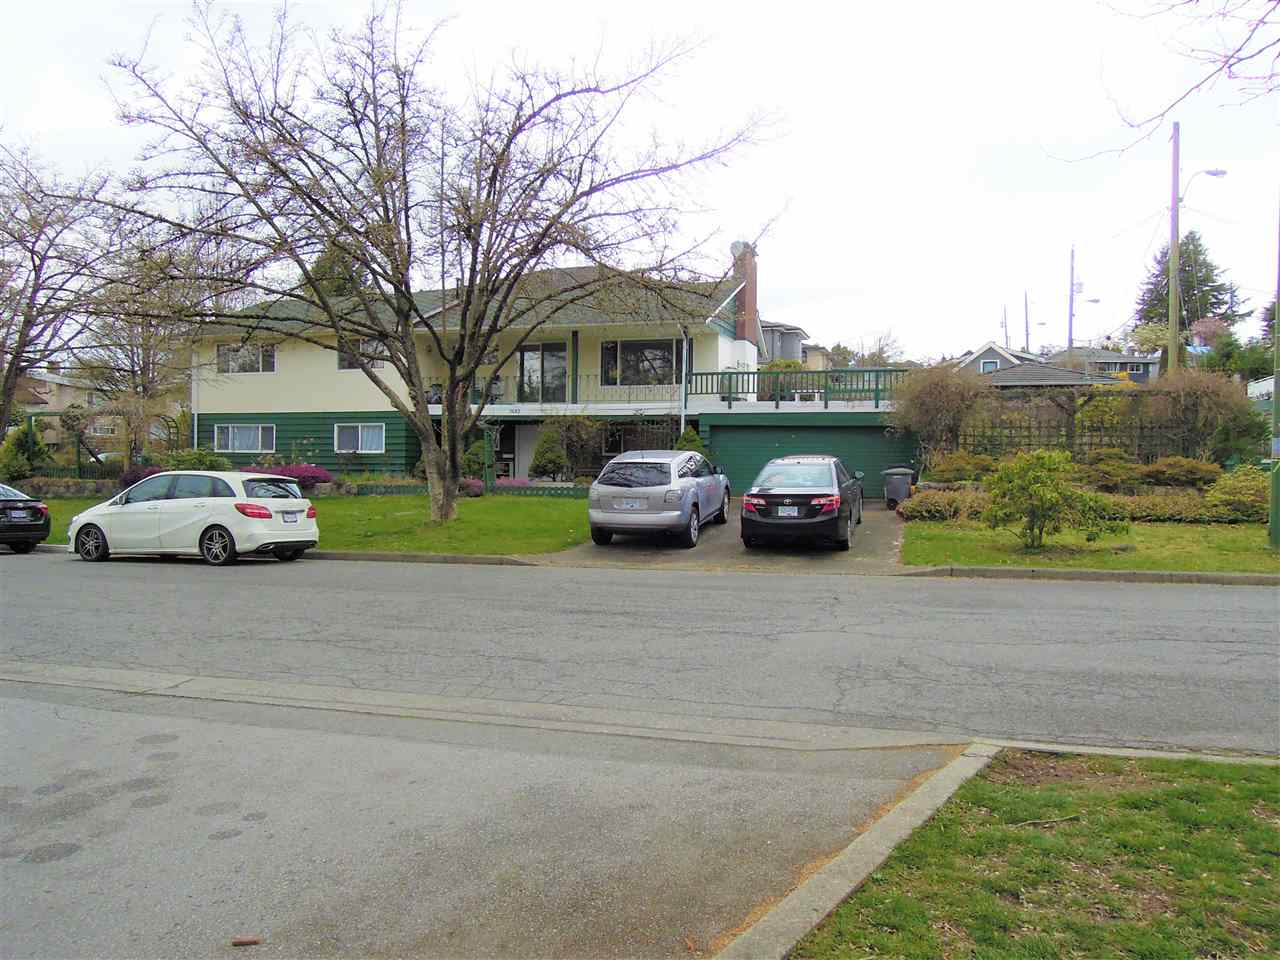 7683 VIVIAN DRIVE - Fraserview VE House/Single Family for sale, 5 Bedrooms (R2560605) - #1